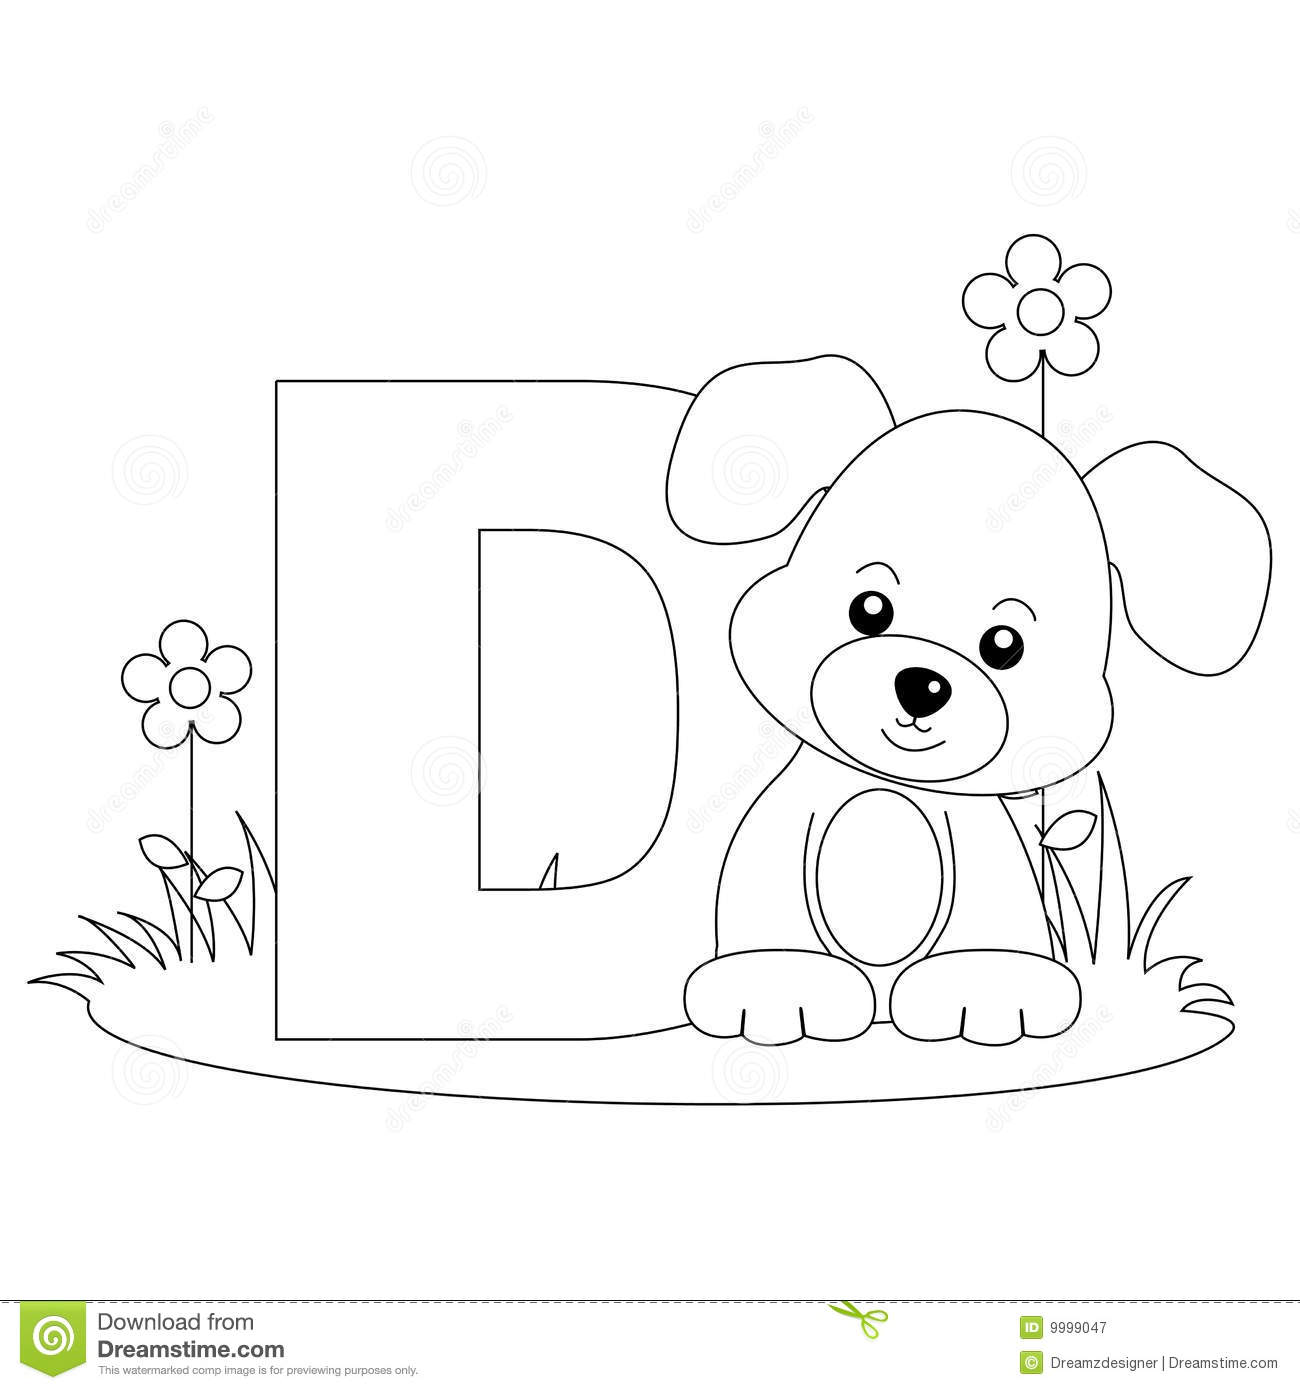 Animal Alphabet D Coloring Page Stock Vector Illustration Of Alphabet Coloring 9999047